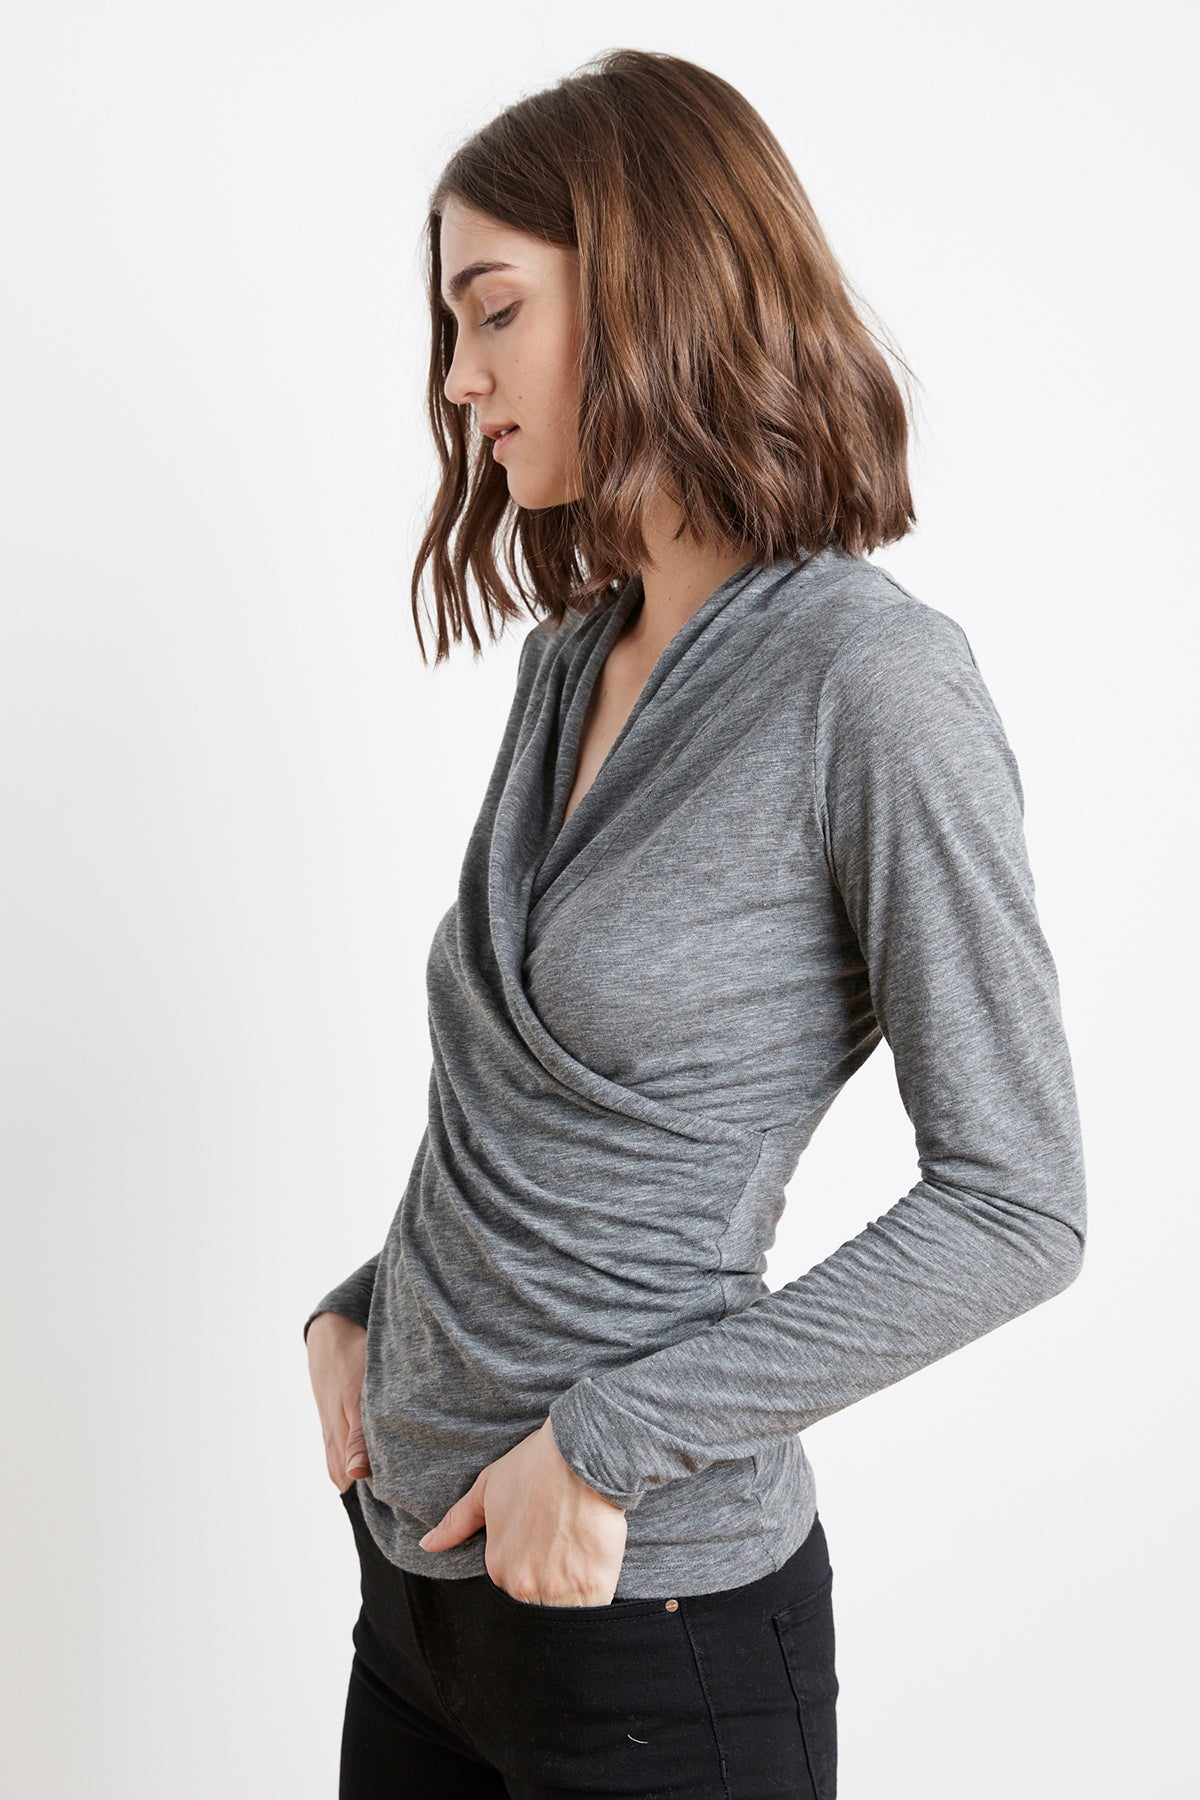 MERI CHARCOAL GREY WRAP FRONT TOP